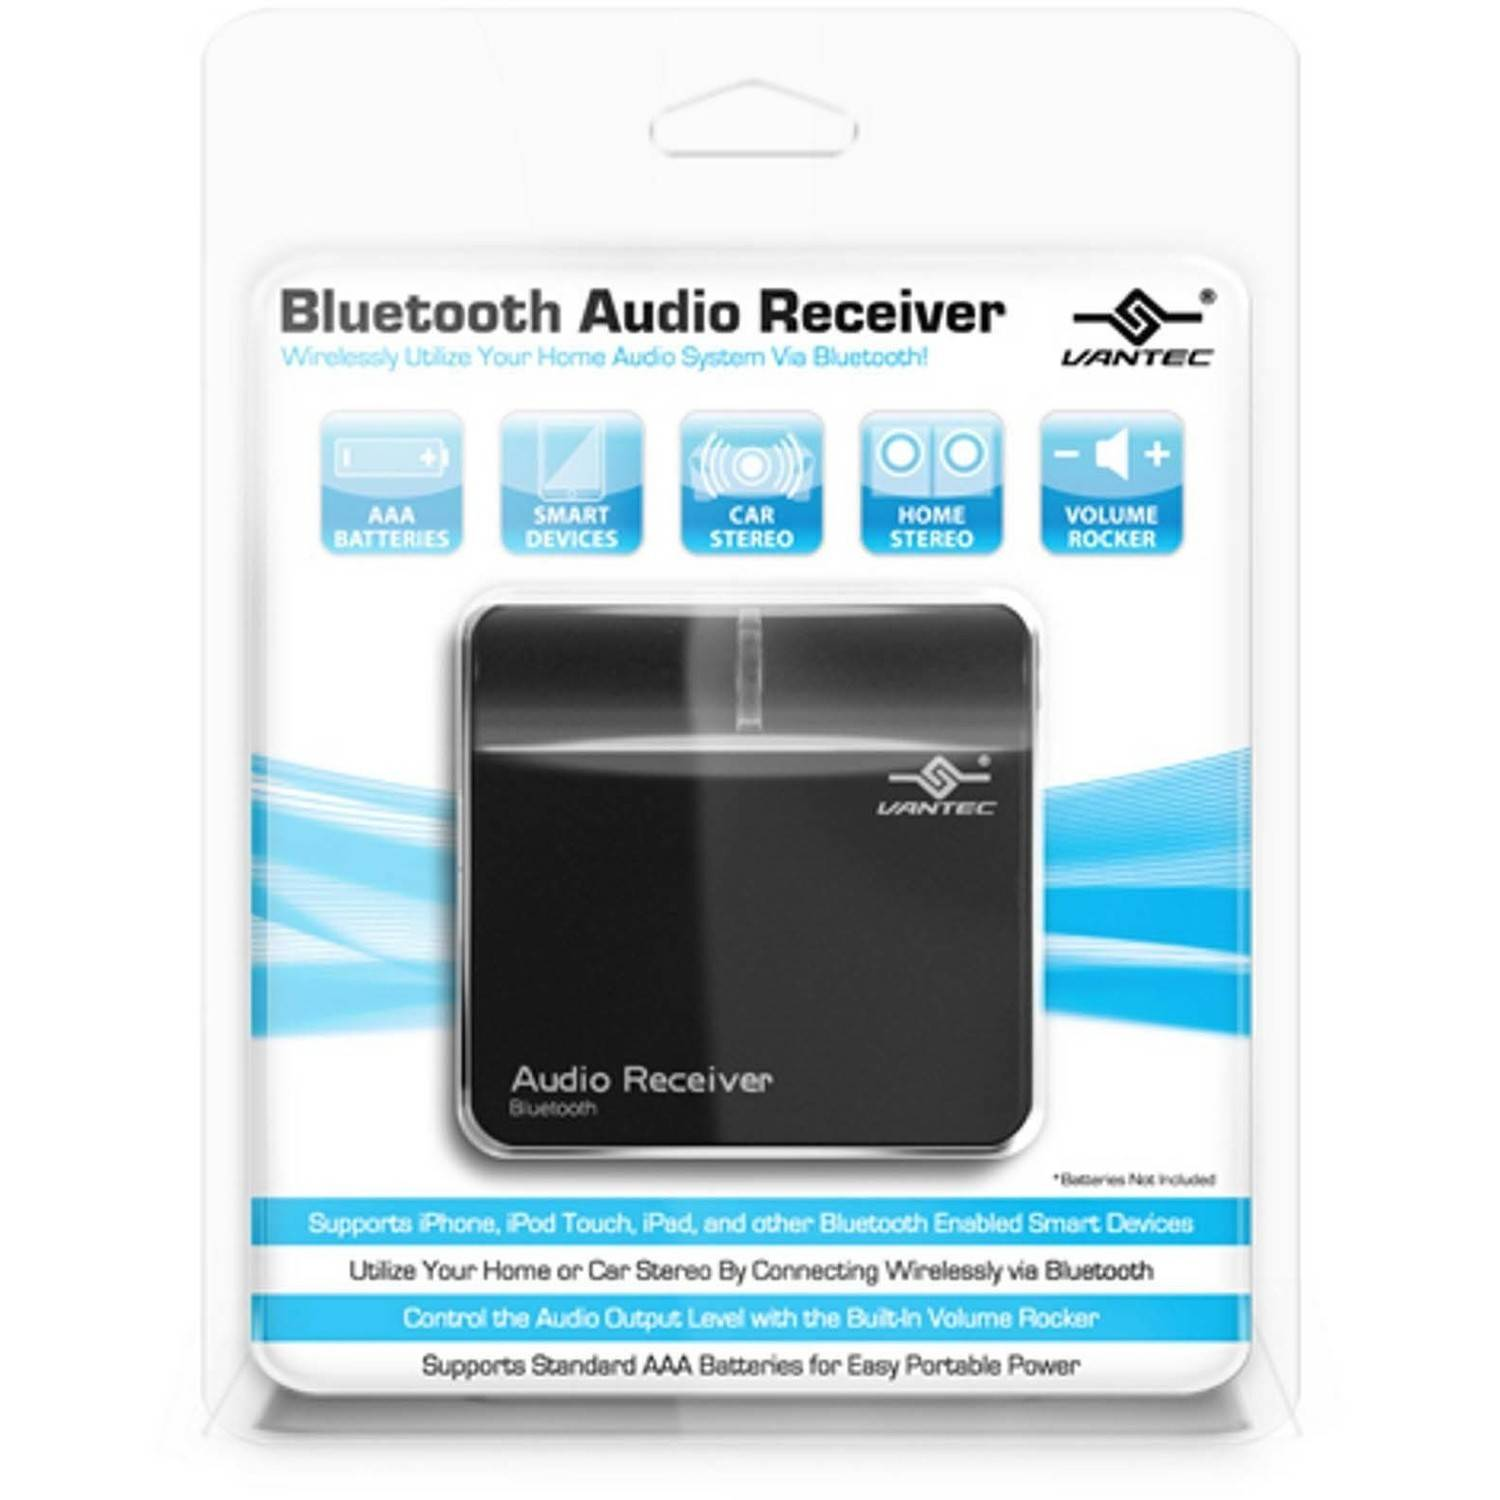 Vantec NBA-BTA350-BK Bluetooth Audio Receiver, Black